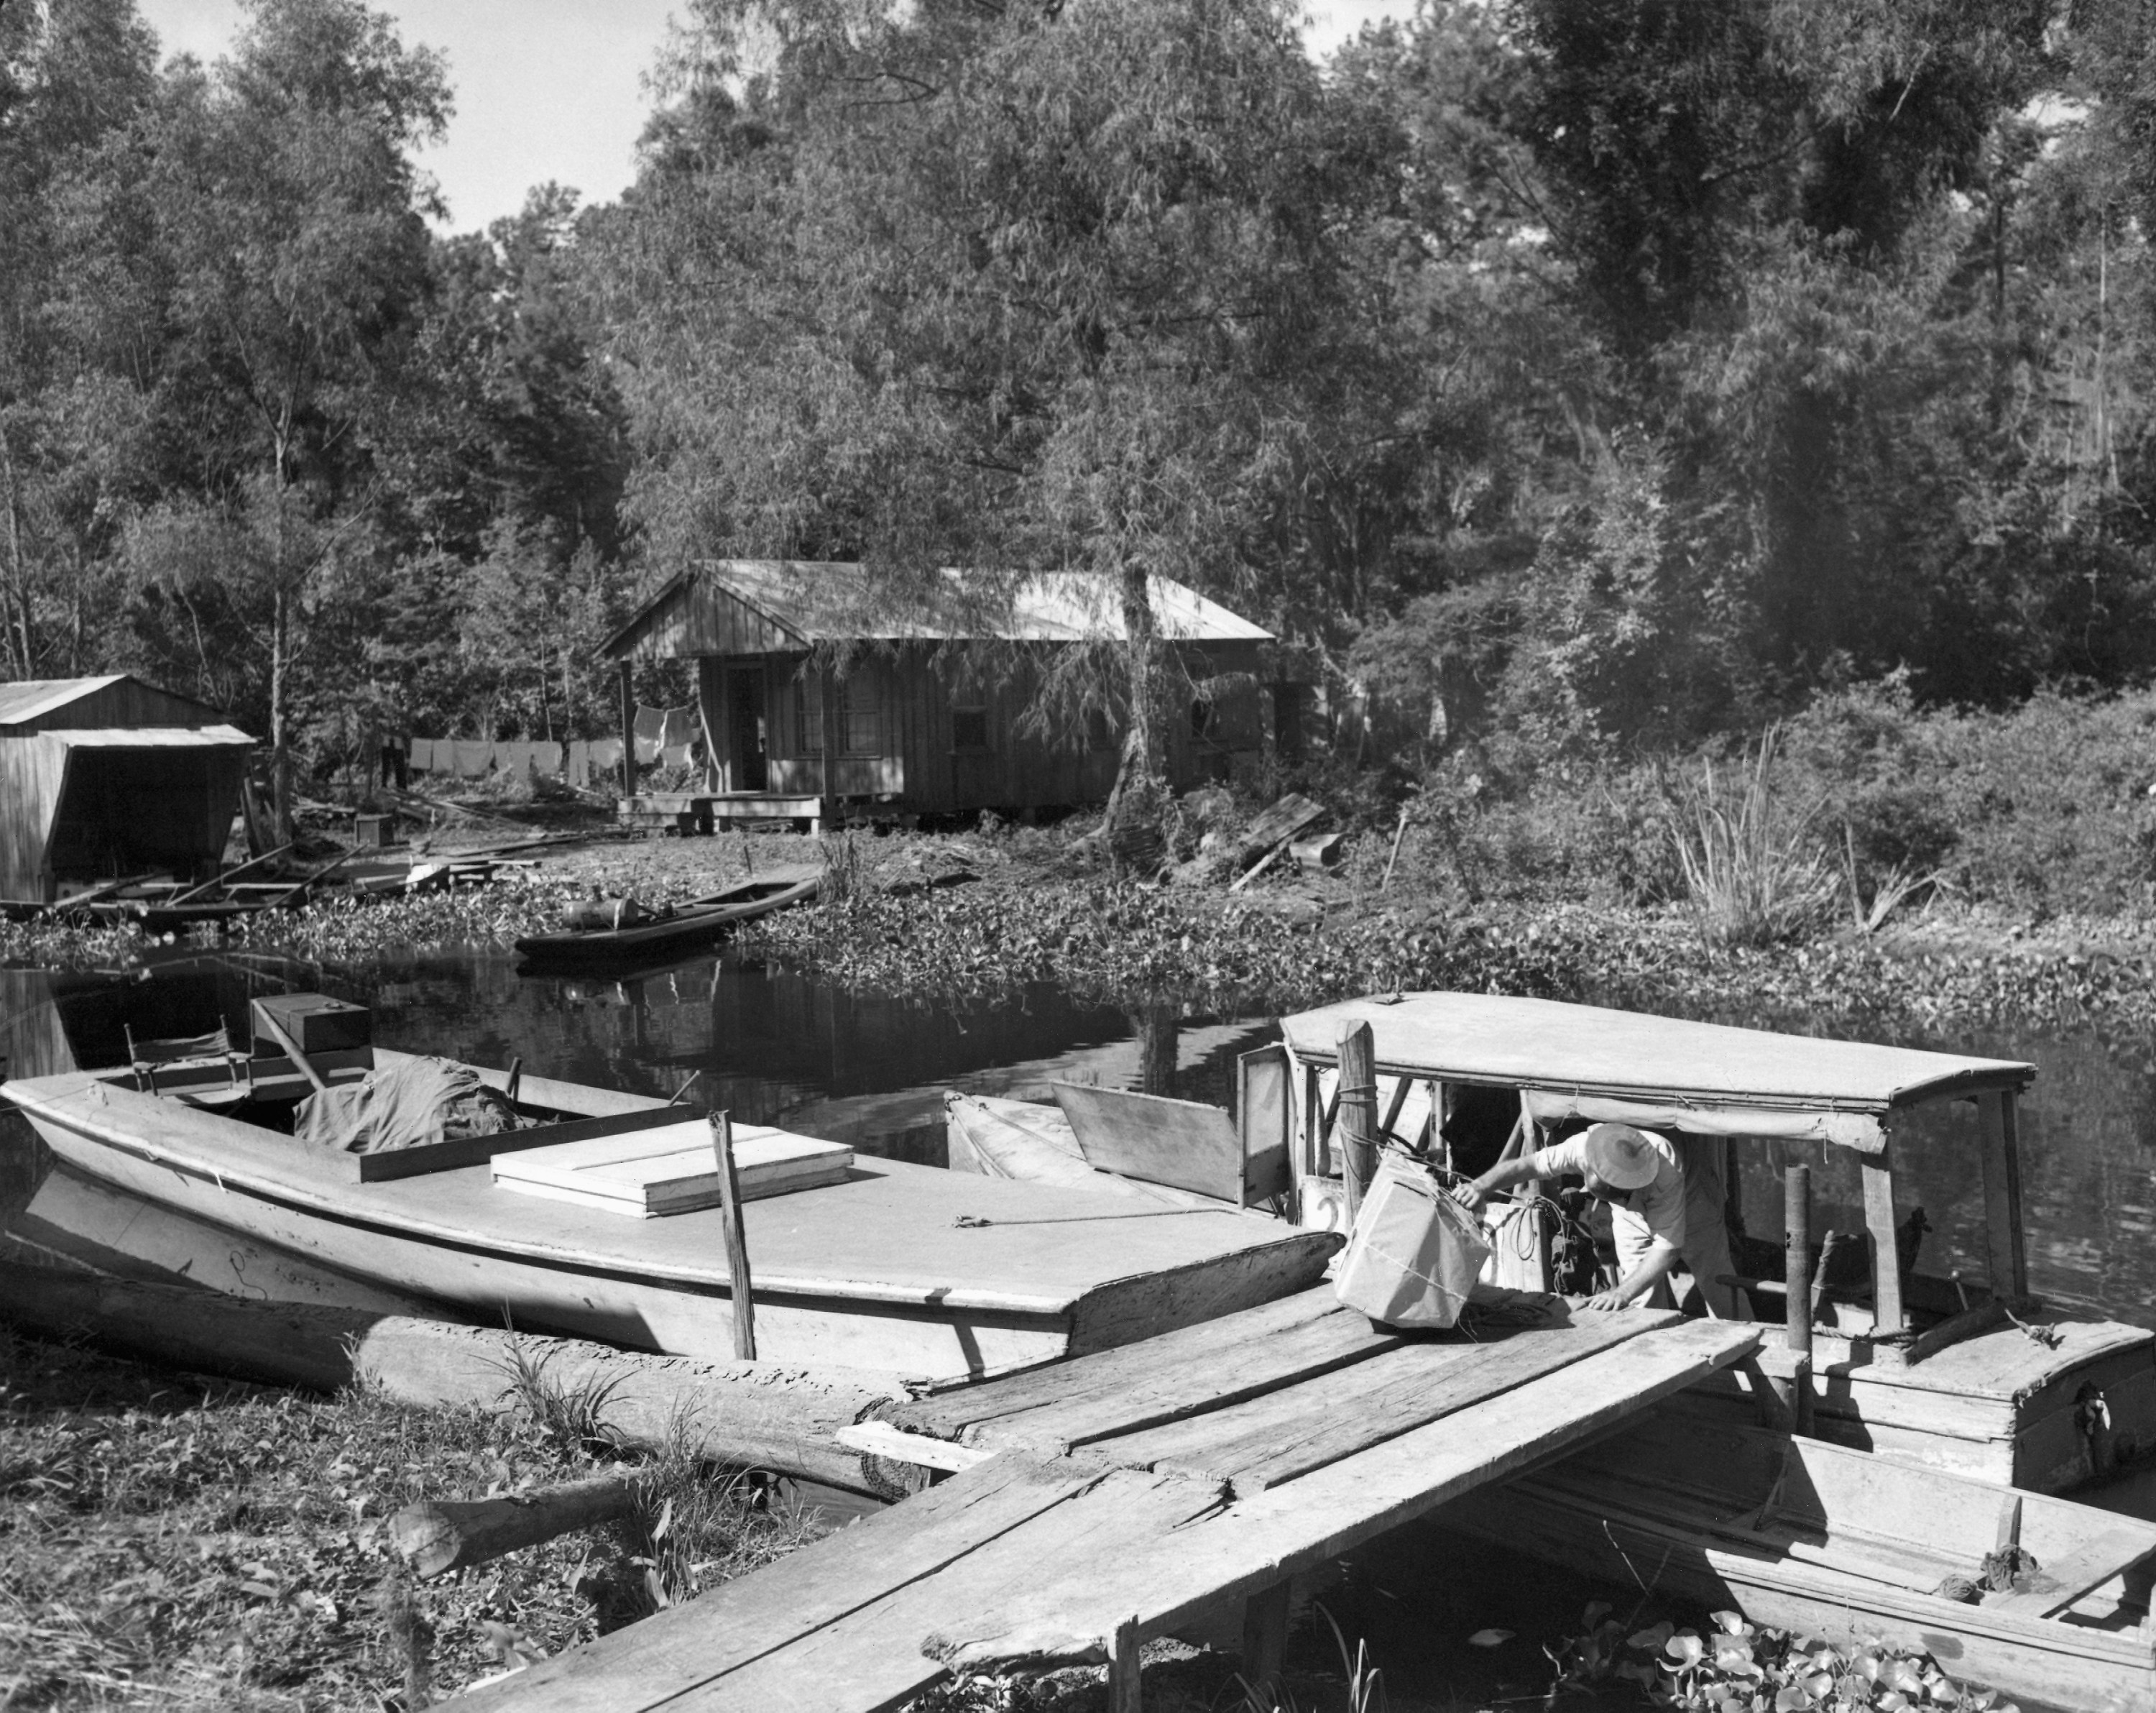 A man gets on a wood boat with a sack of mail in a bayou